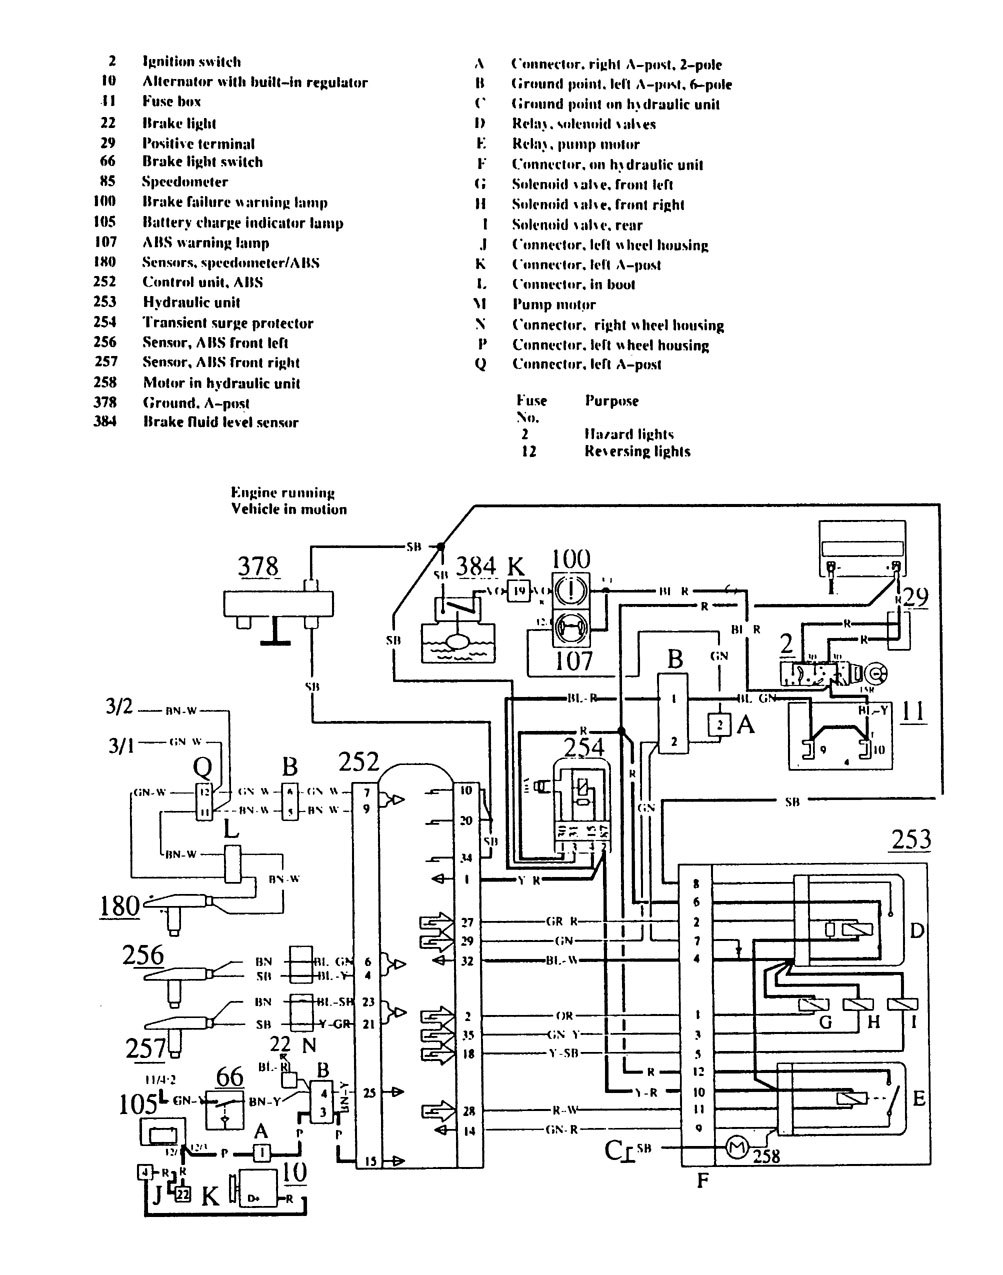 1985 Volvo Fuse Diagram Great Design Of Wiring For 2004 S40 91 740 Box Starter S60 Passenger Xc90